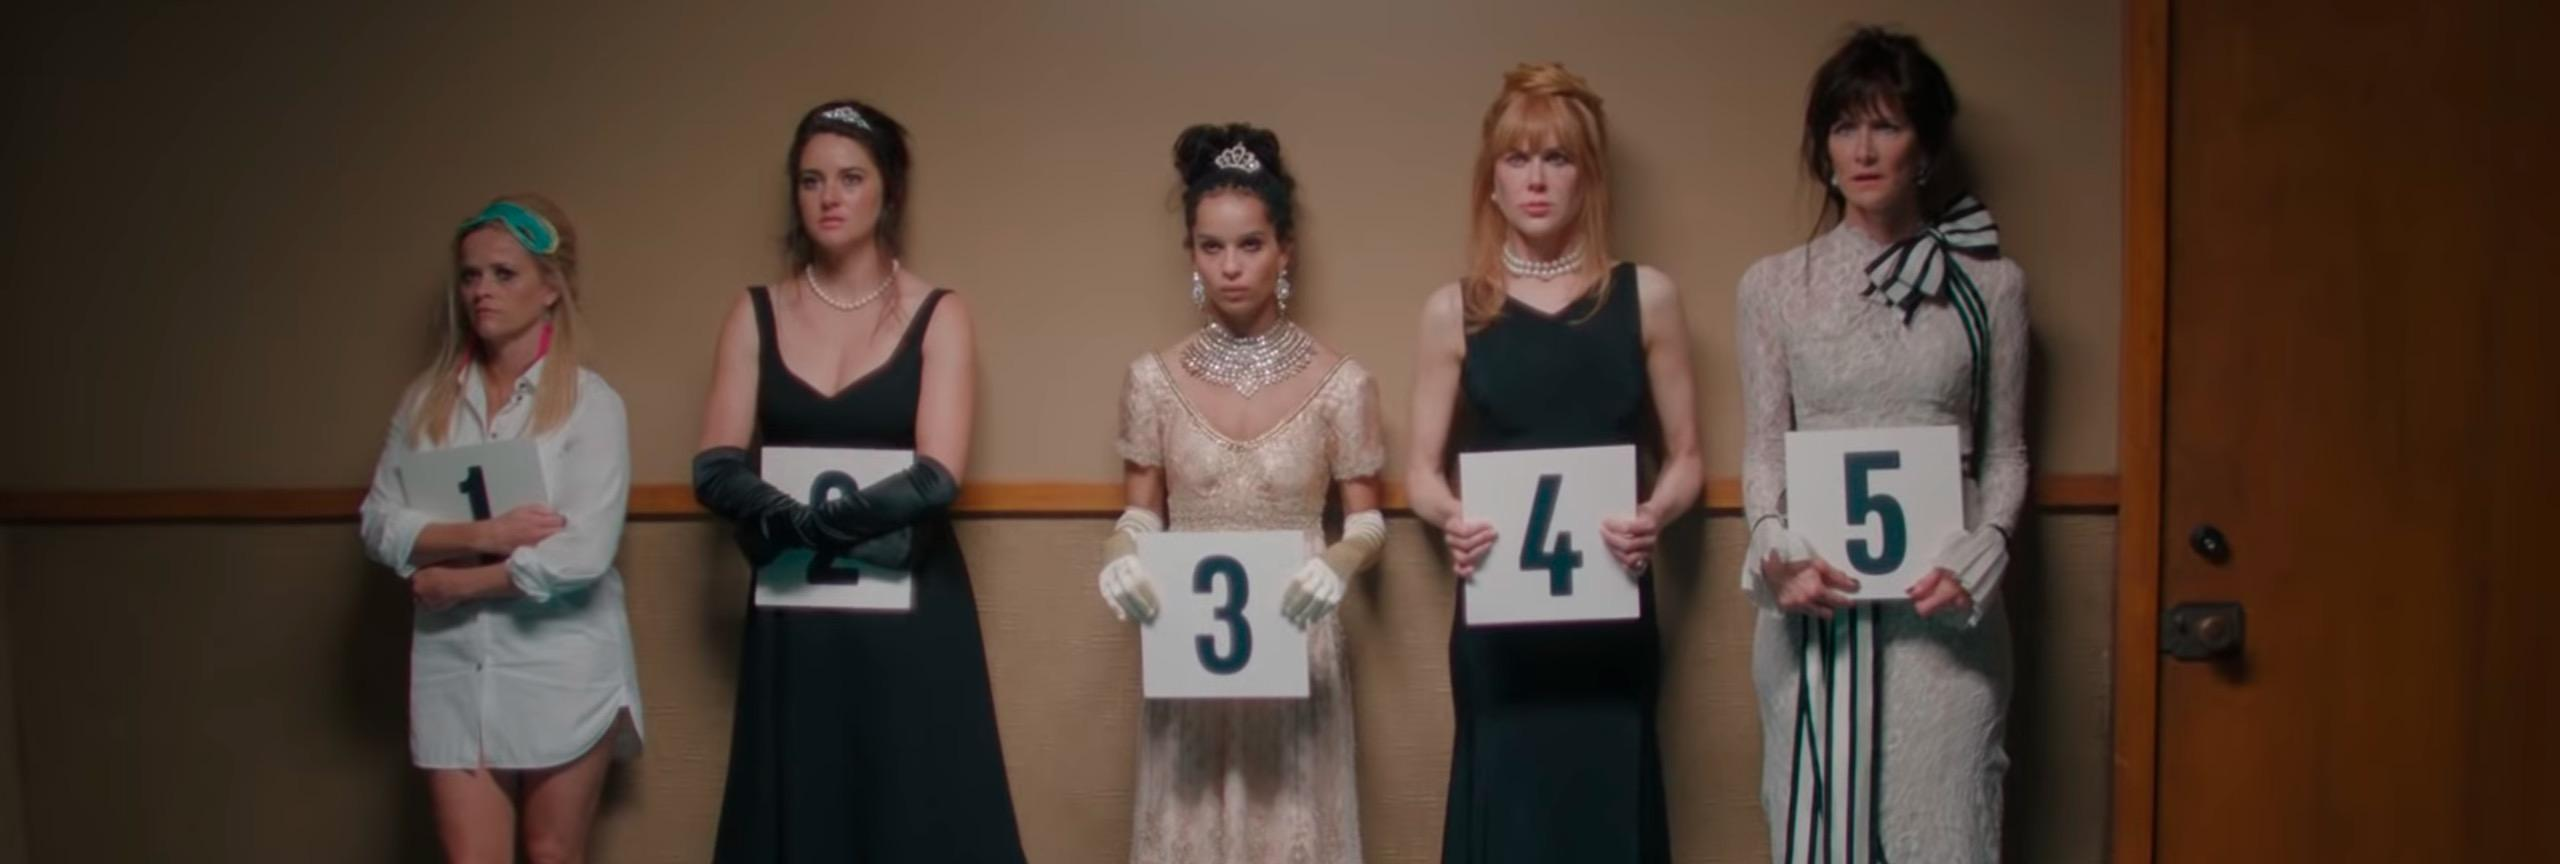 73b6b3ef6 Is Season 2 Of 'Big Little Lies' A Worthy Follow-Up? Here's What The ...